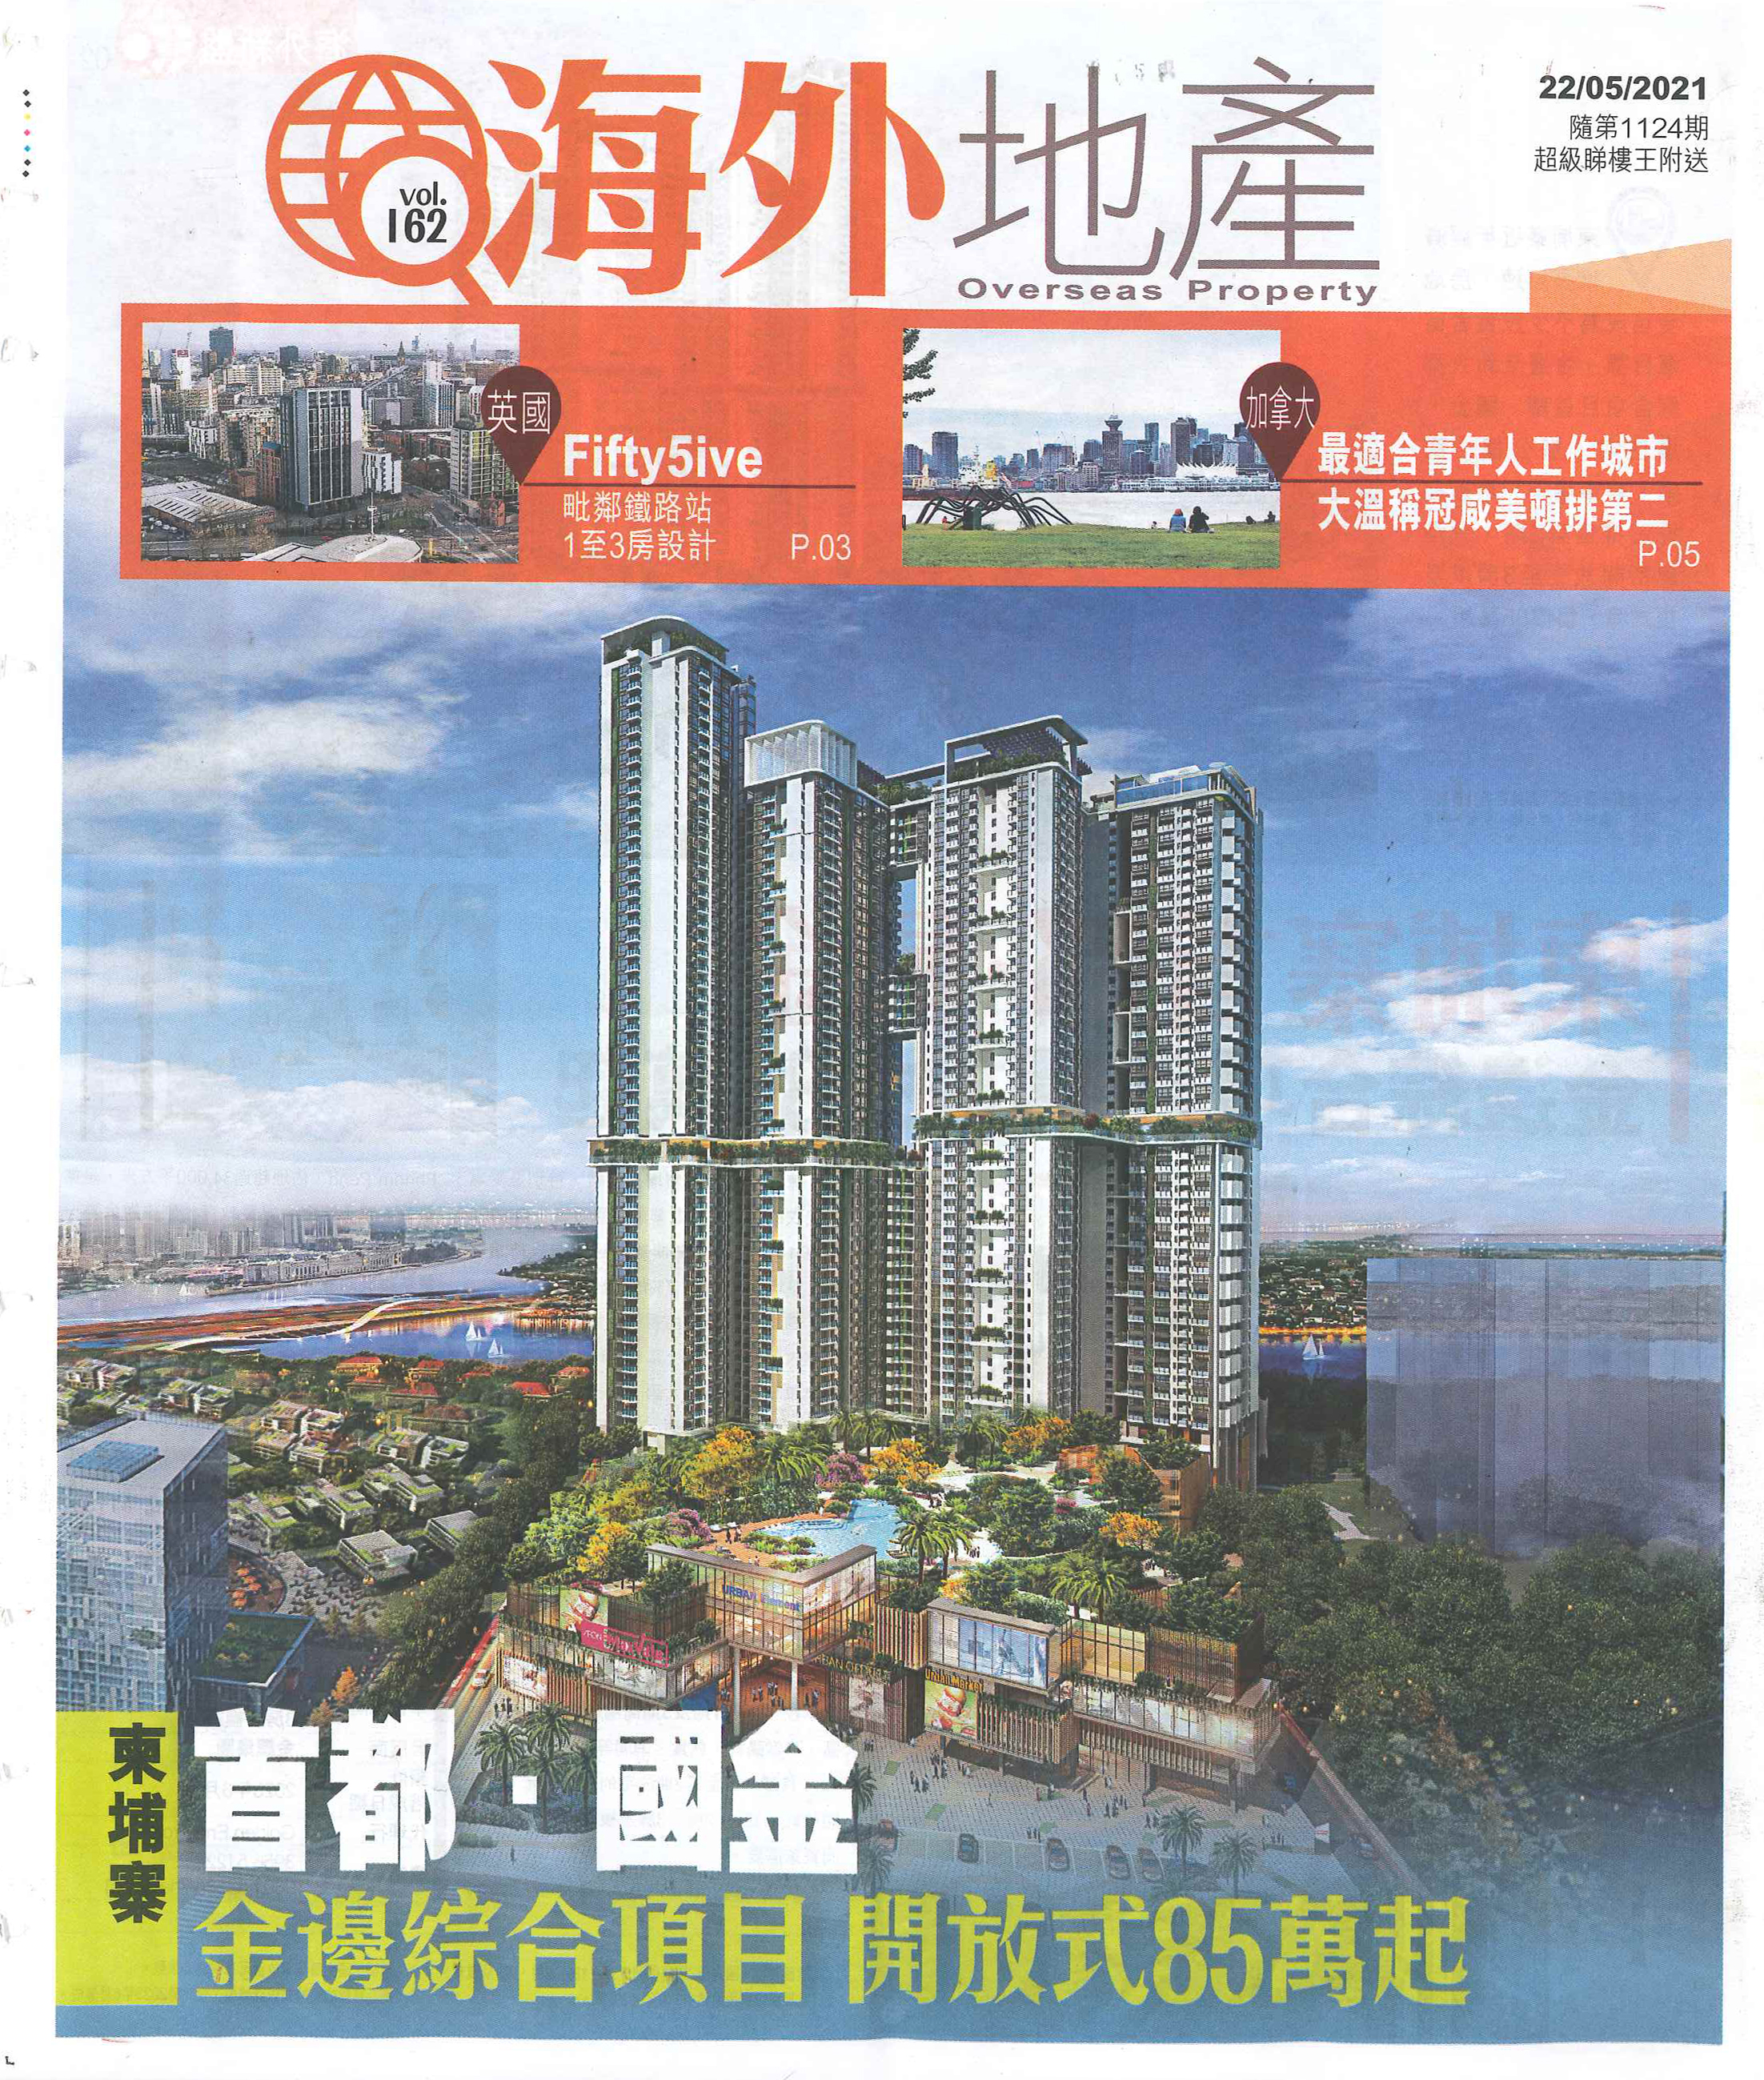 Singtao's Property Browser covers the Cambodia property market